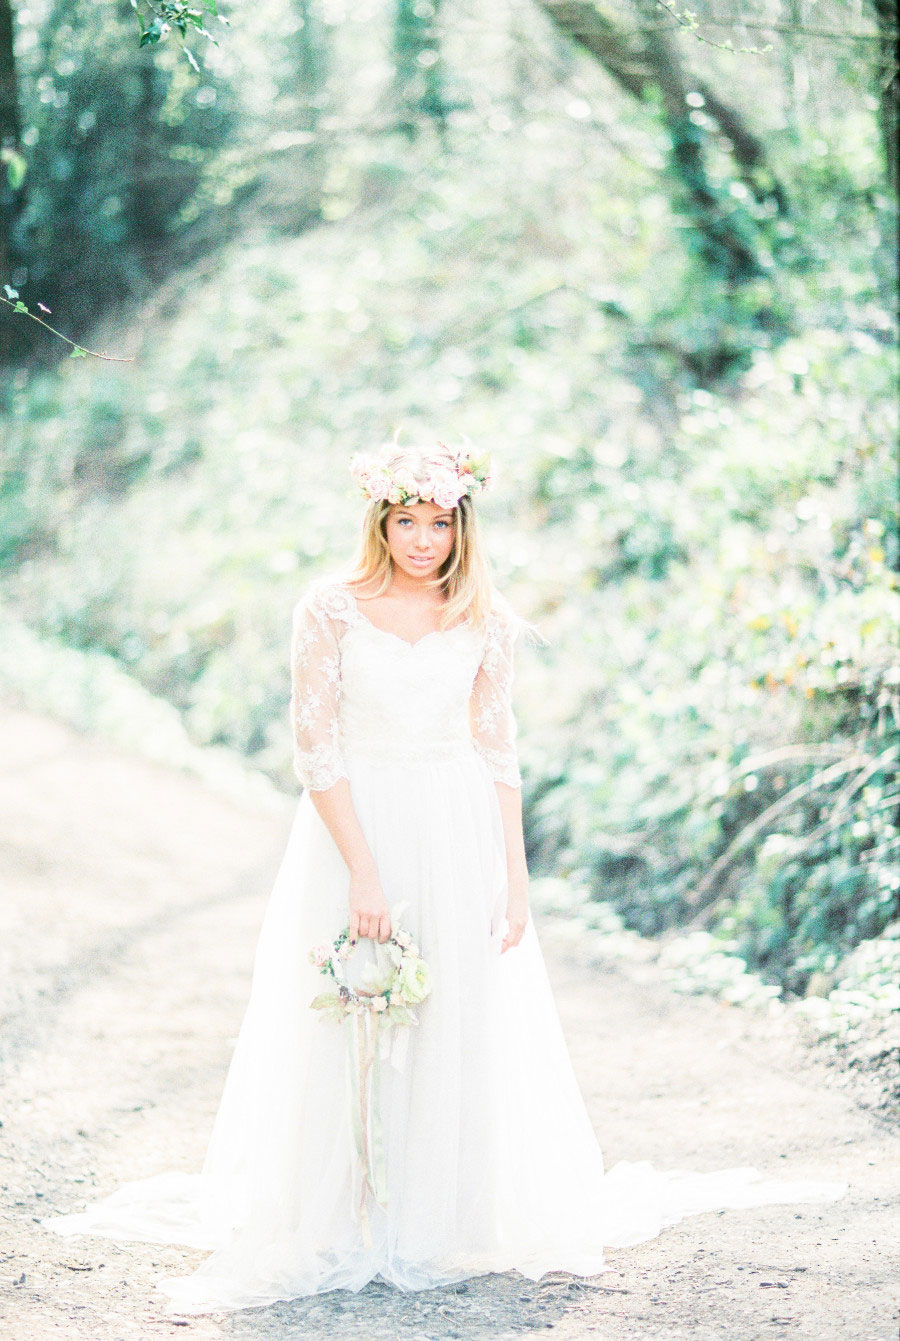 Alone In The Woods Bridal Editorial0000